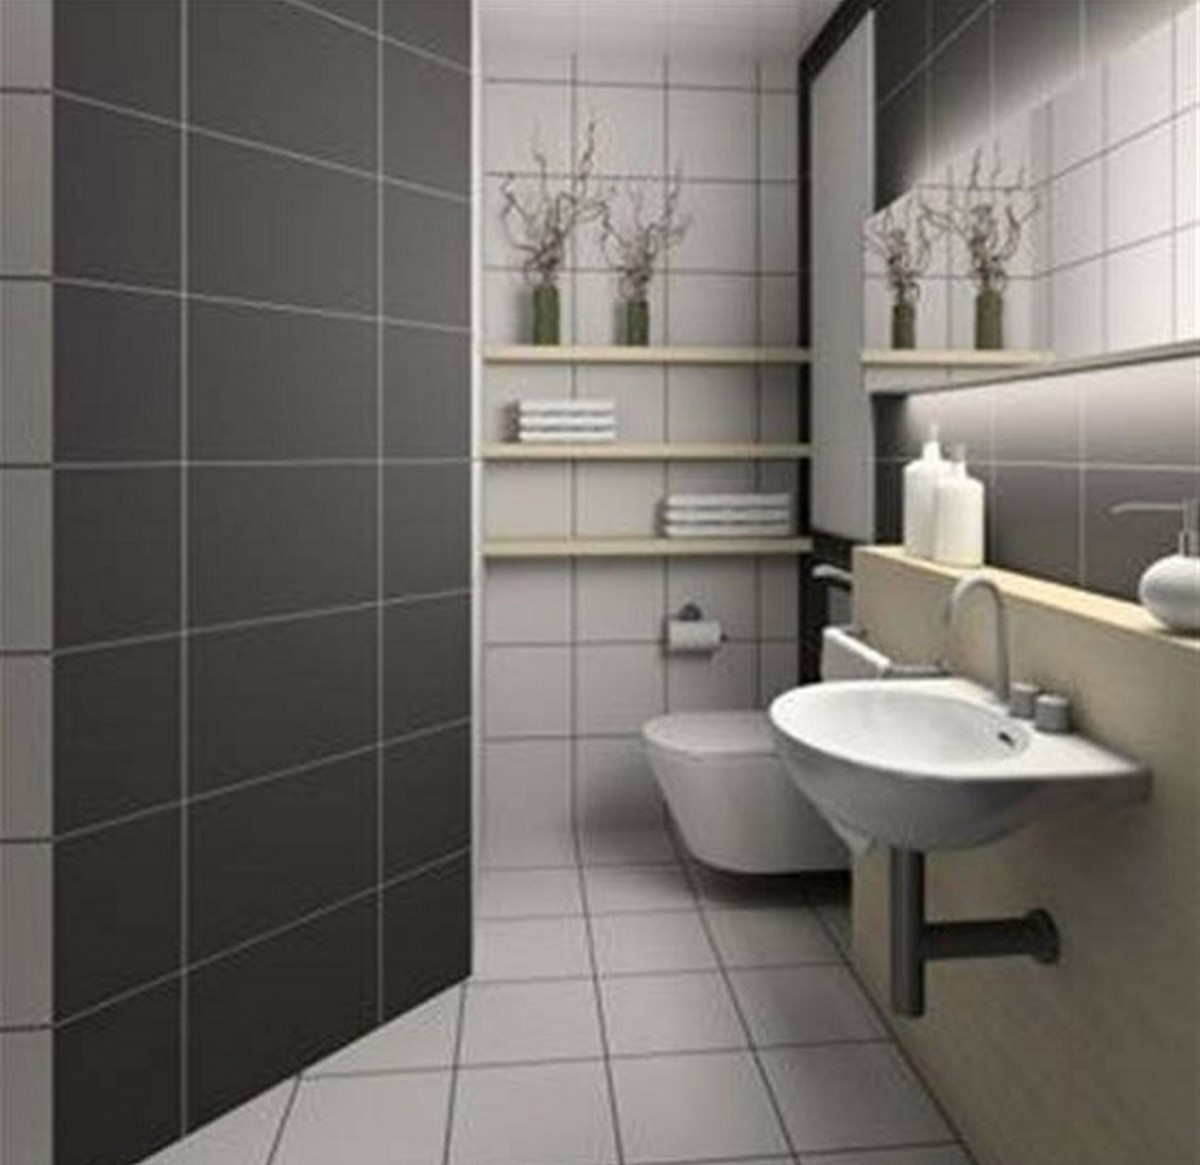 1 color ideas for bathrooms grey color bathroom 2c3b317e4431ed300bcc35a1d491b73d 6a00d8341dabcb53ef017d40d60d7b970c - Bathroom Accessories Color Ideas